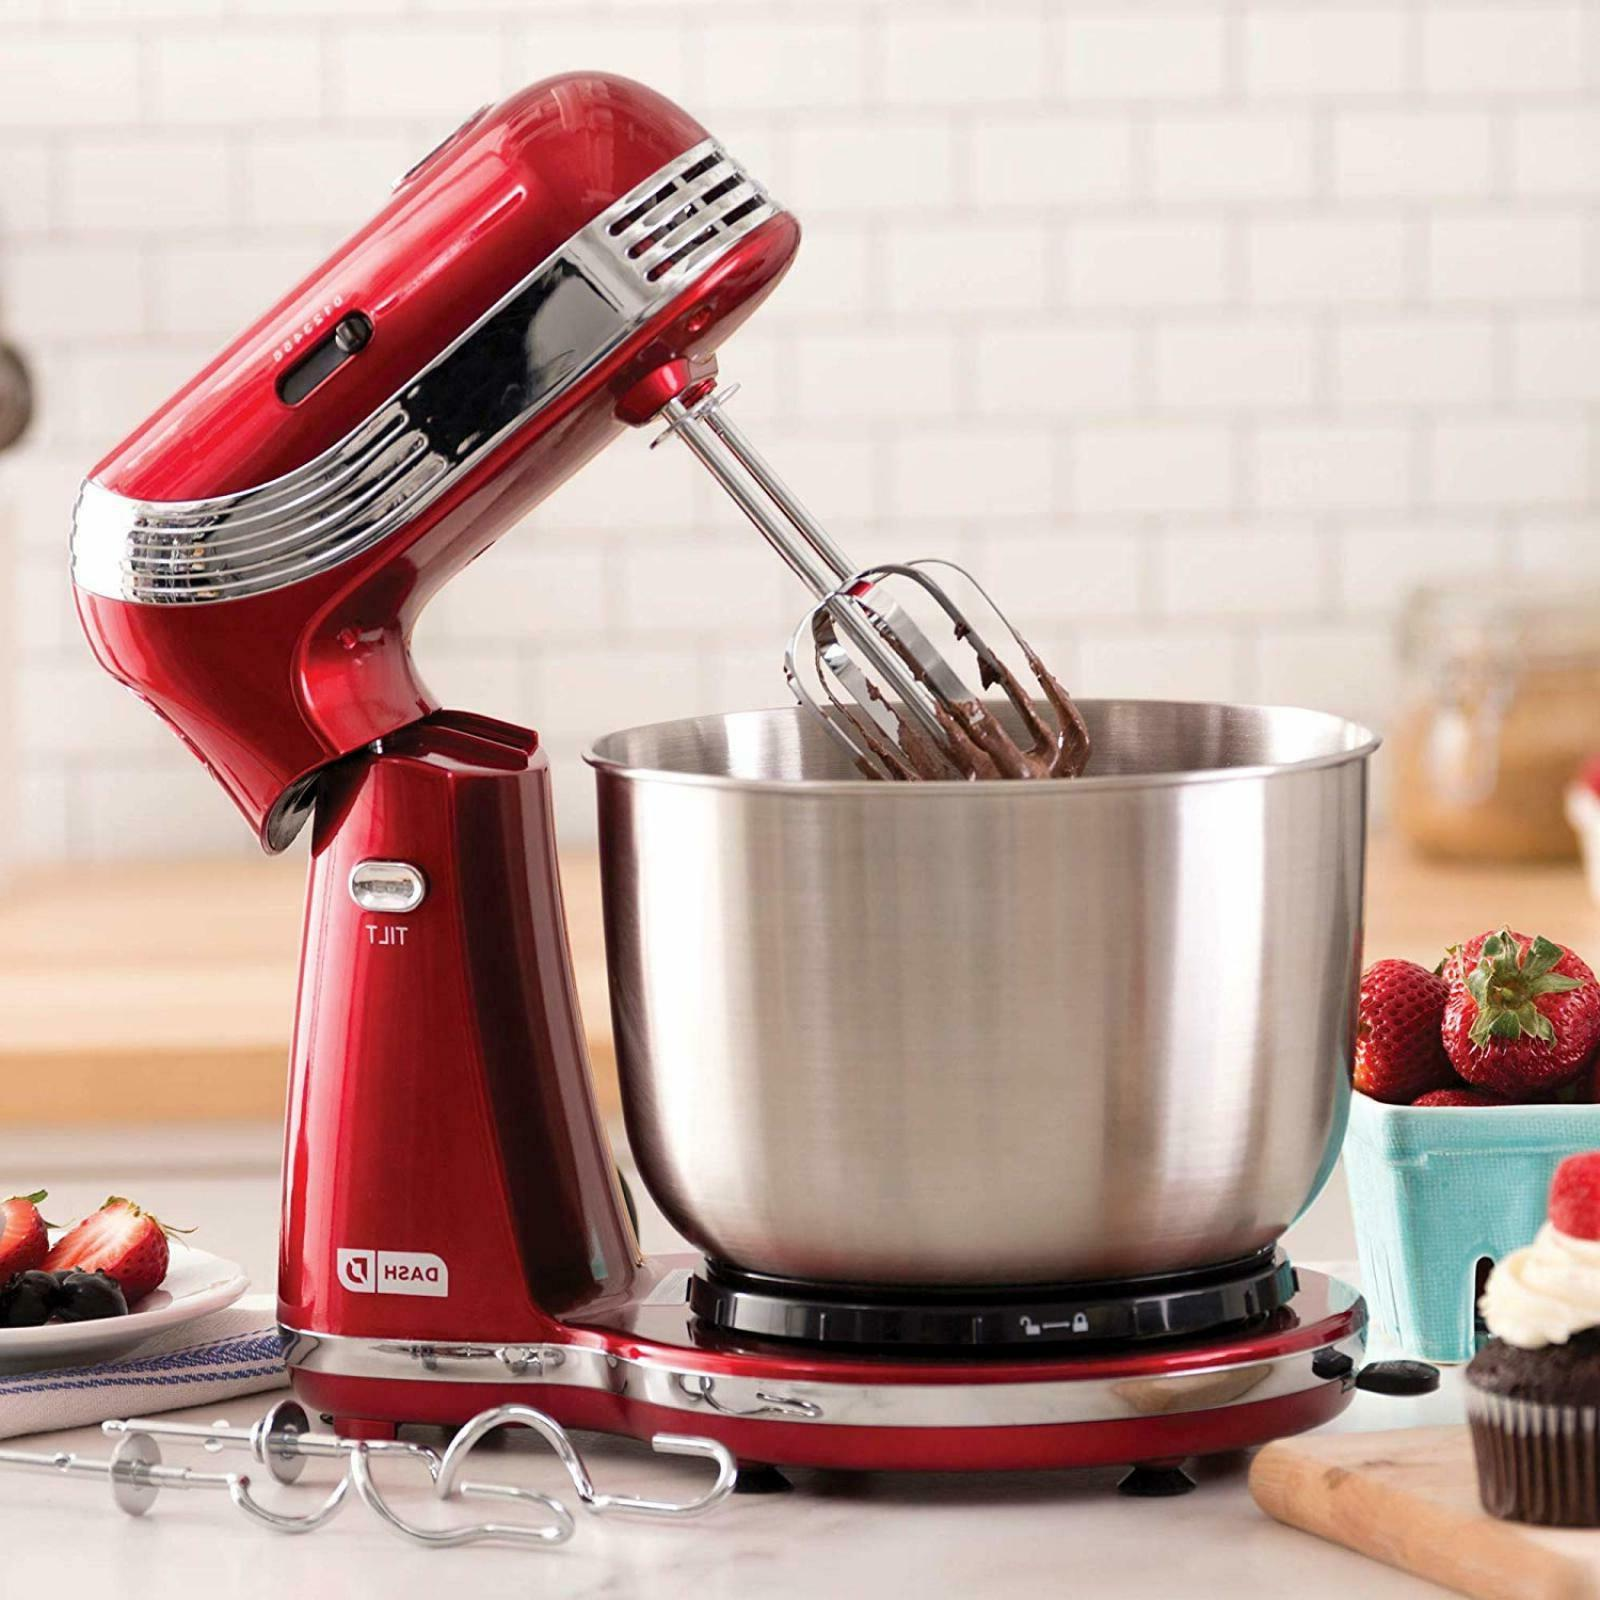 DASH ELECTRIC 3 QT STAND MIXER 6 SPEED KITCHEN BAKING DOUGH